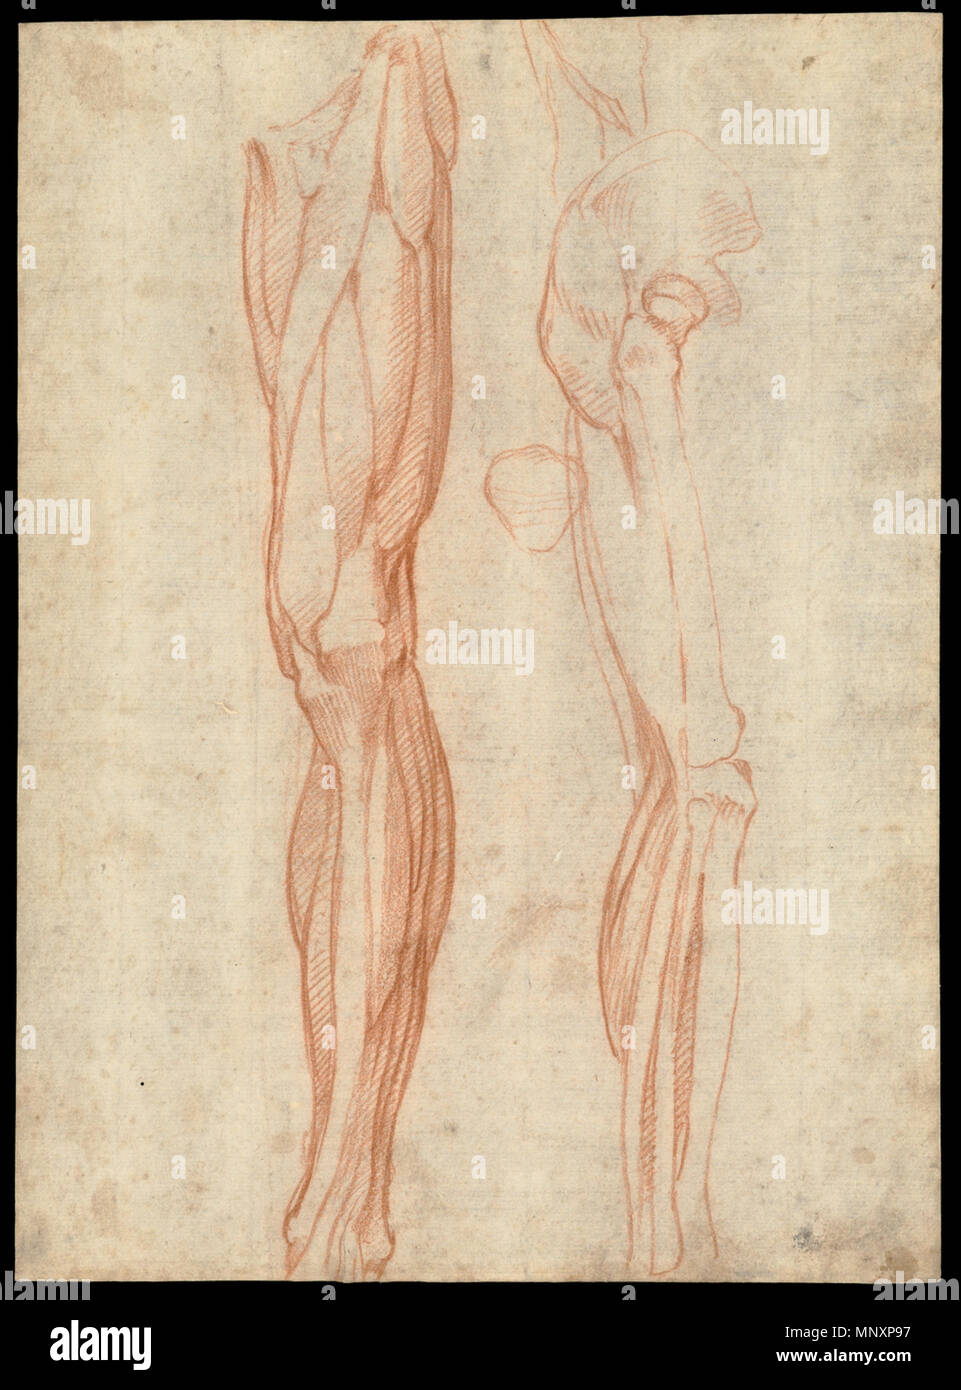 1178 The Muscles Of The Left Leg Seen From The Front And The Bones